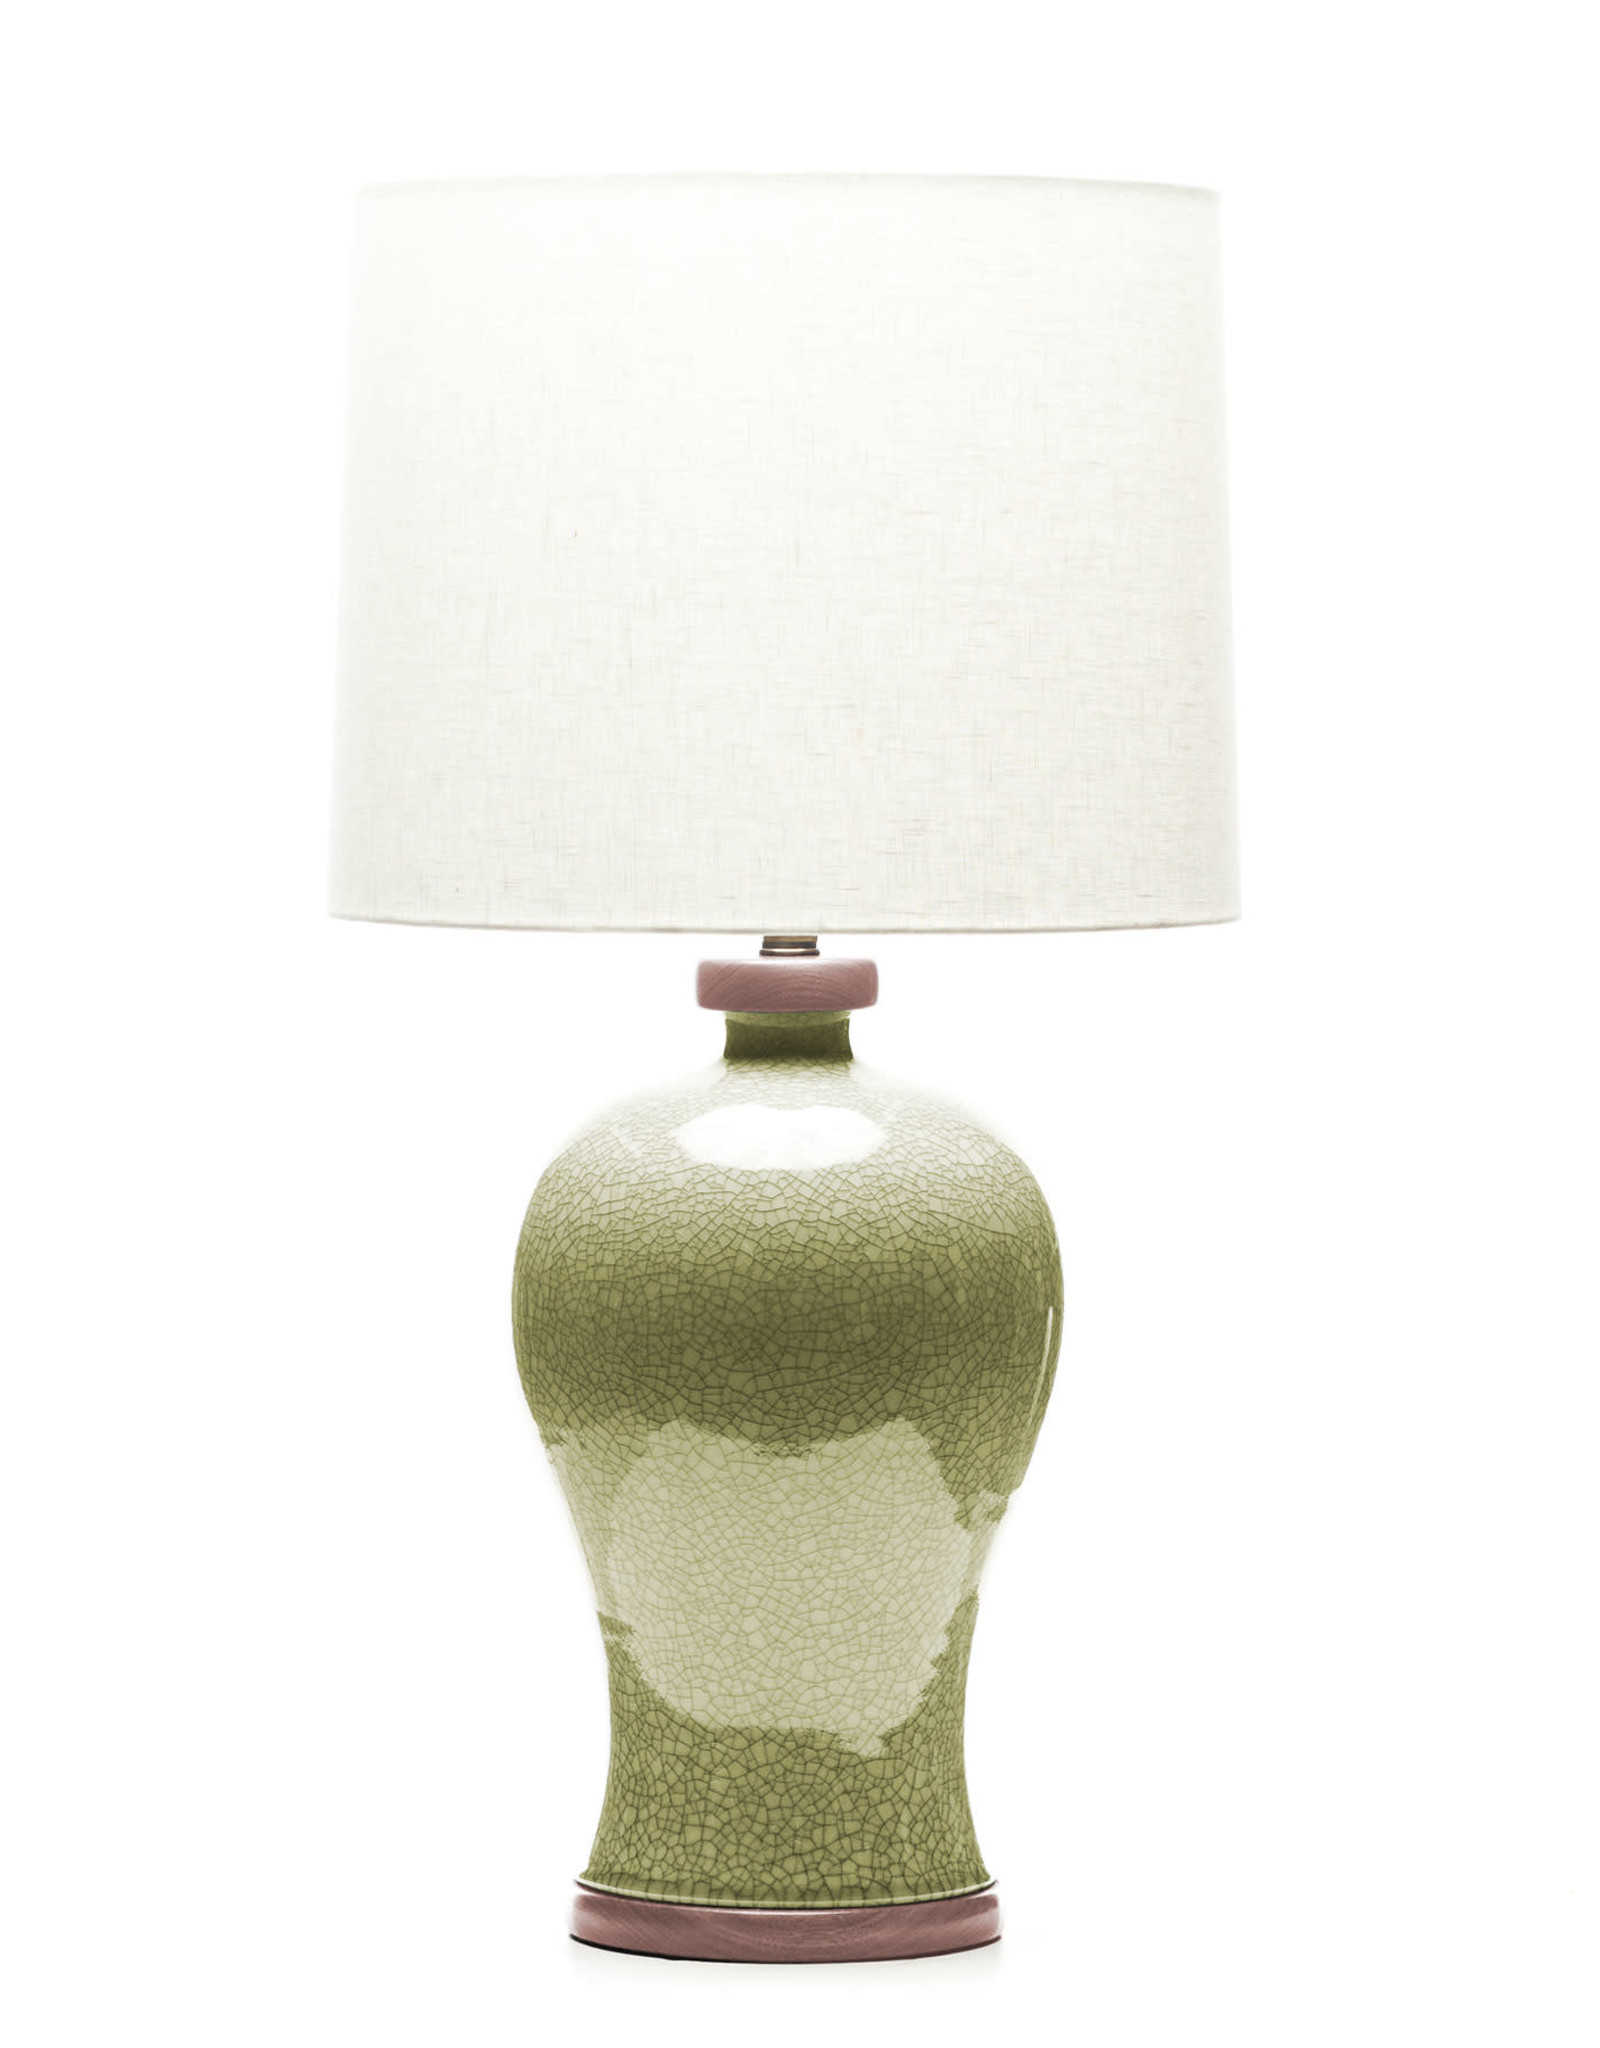 Lawrence & Scott Dashiell Table Lamp in Oyster Crackle with Sapele Base